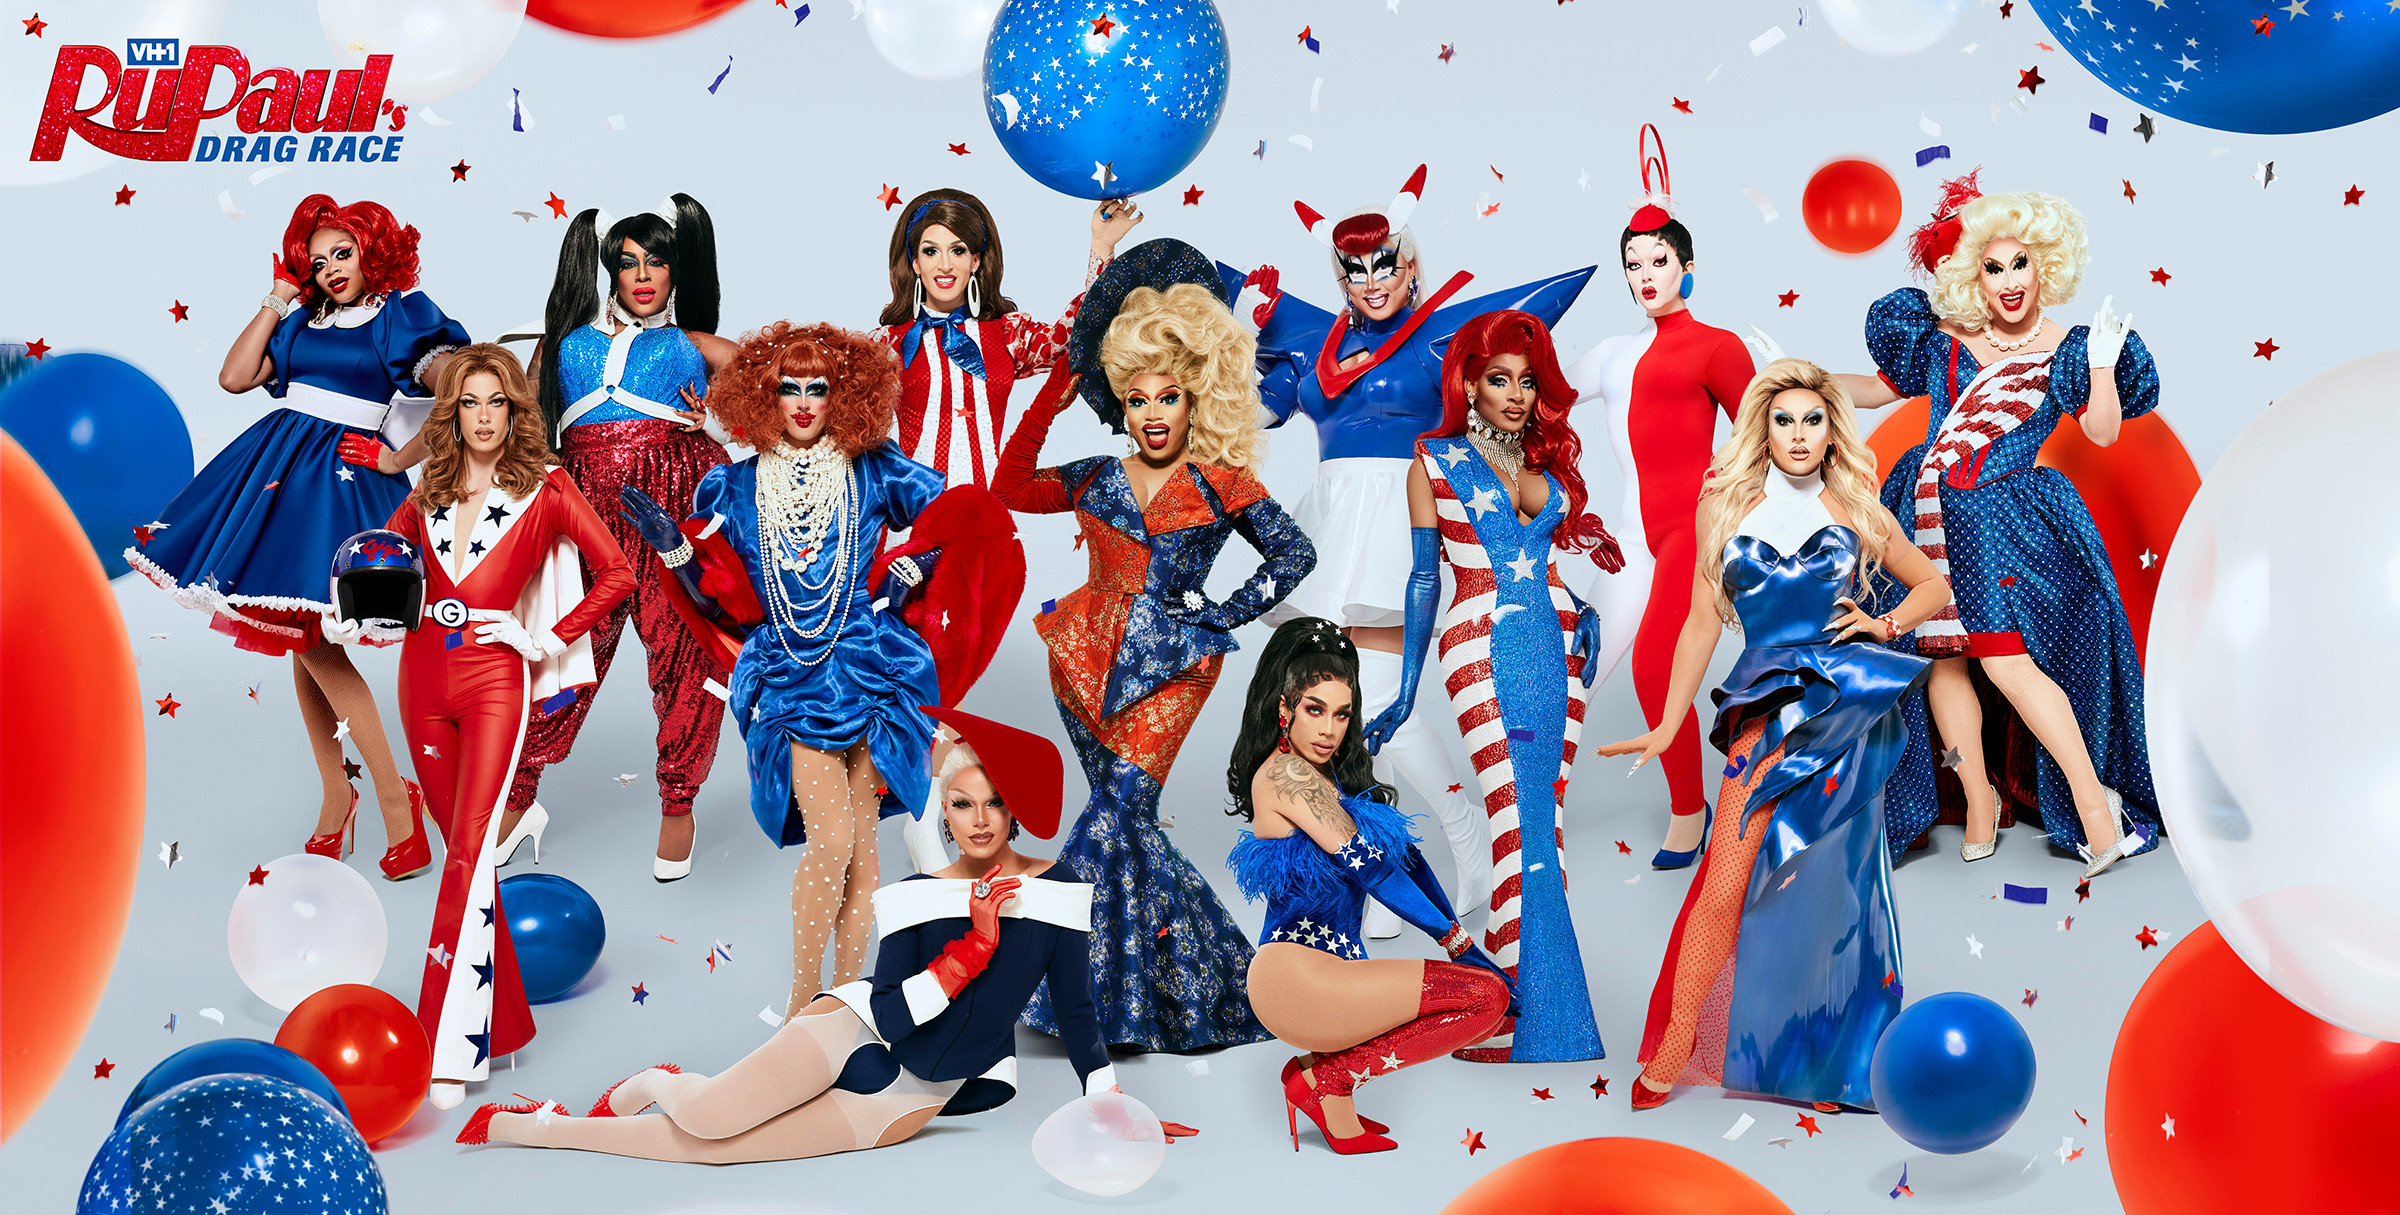 RuPaul's Drag Race Season 13: Renewal Update, update, Cast, Trailer, and All You Should Know